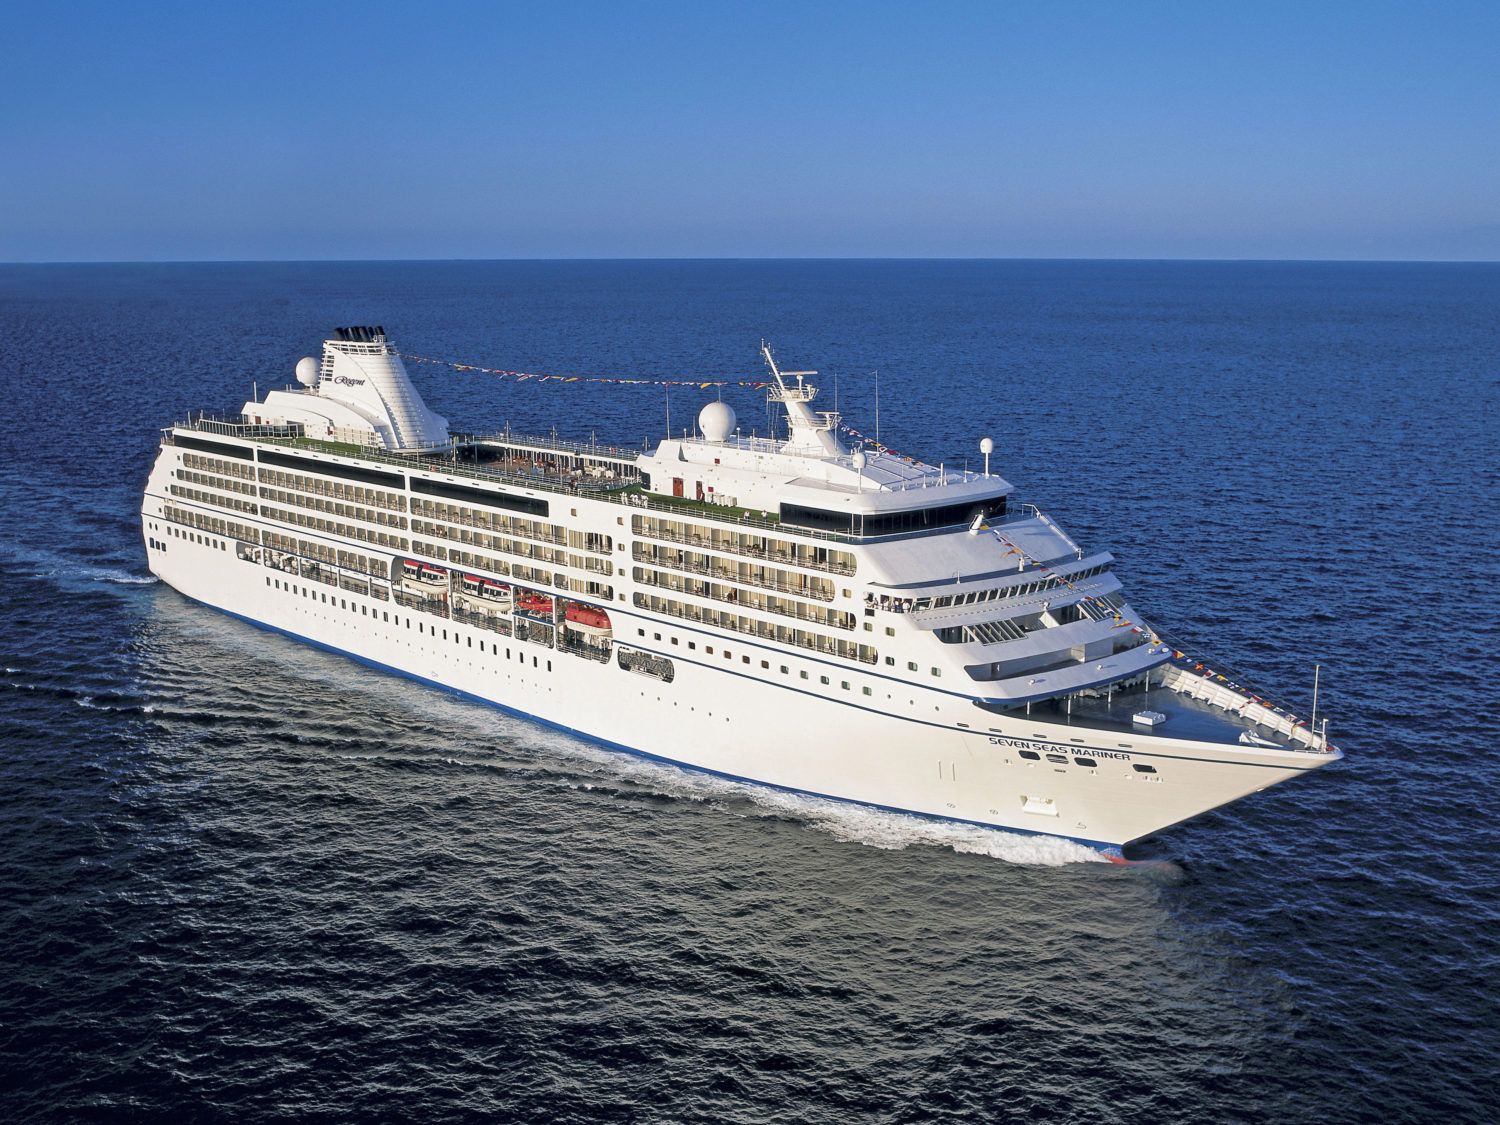 Cruise Line's Four Month Cruise Visits 59 Ports with 18 Overnight Visits